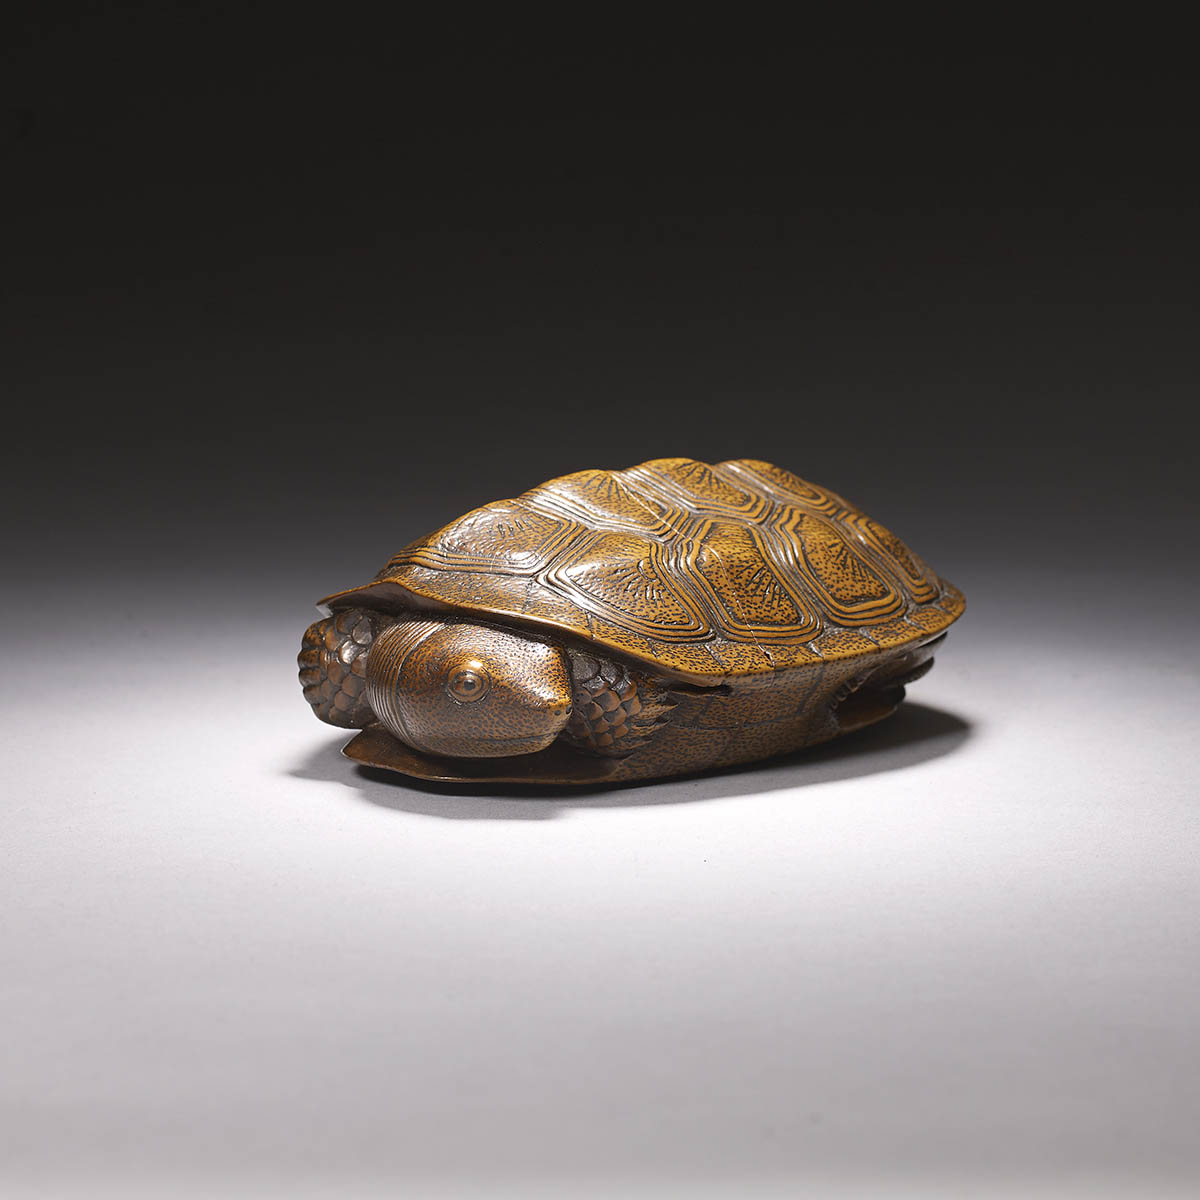 Yoshihisa wood tonkotsu in the form of a turtle